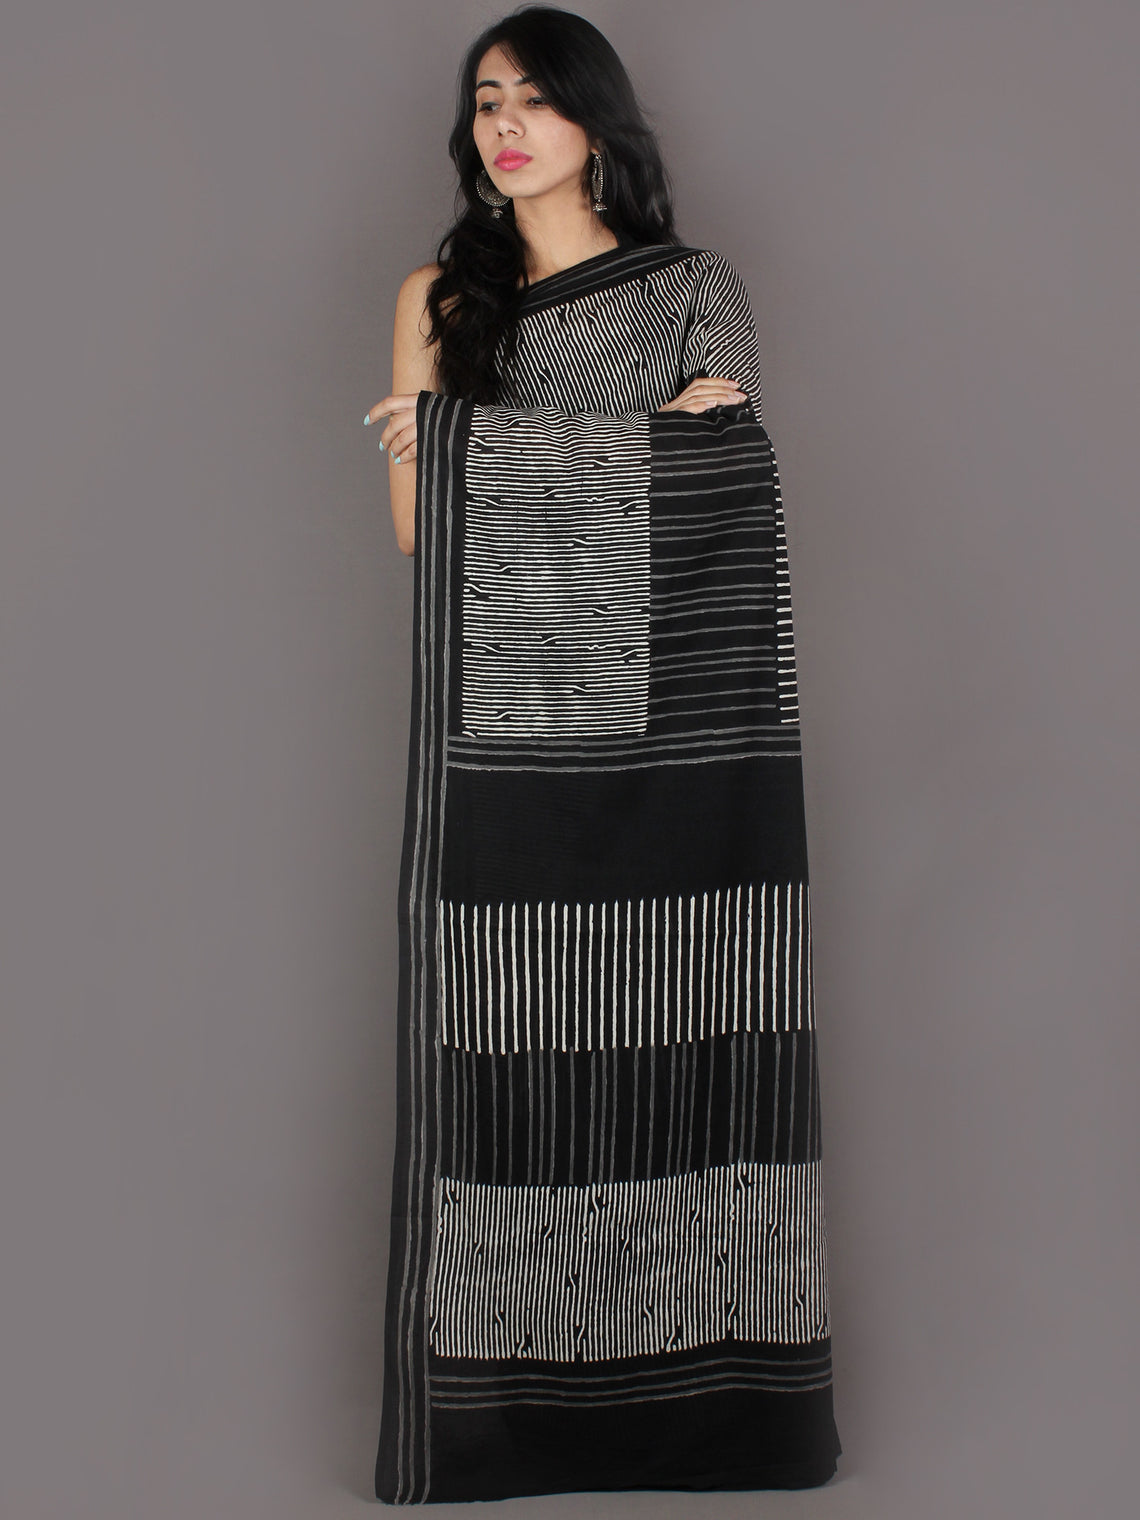 Black White Grey Hand Block Printed in Natural Colors Cotton Mul Saree - S03170910